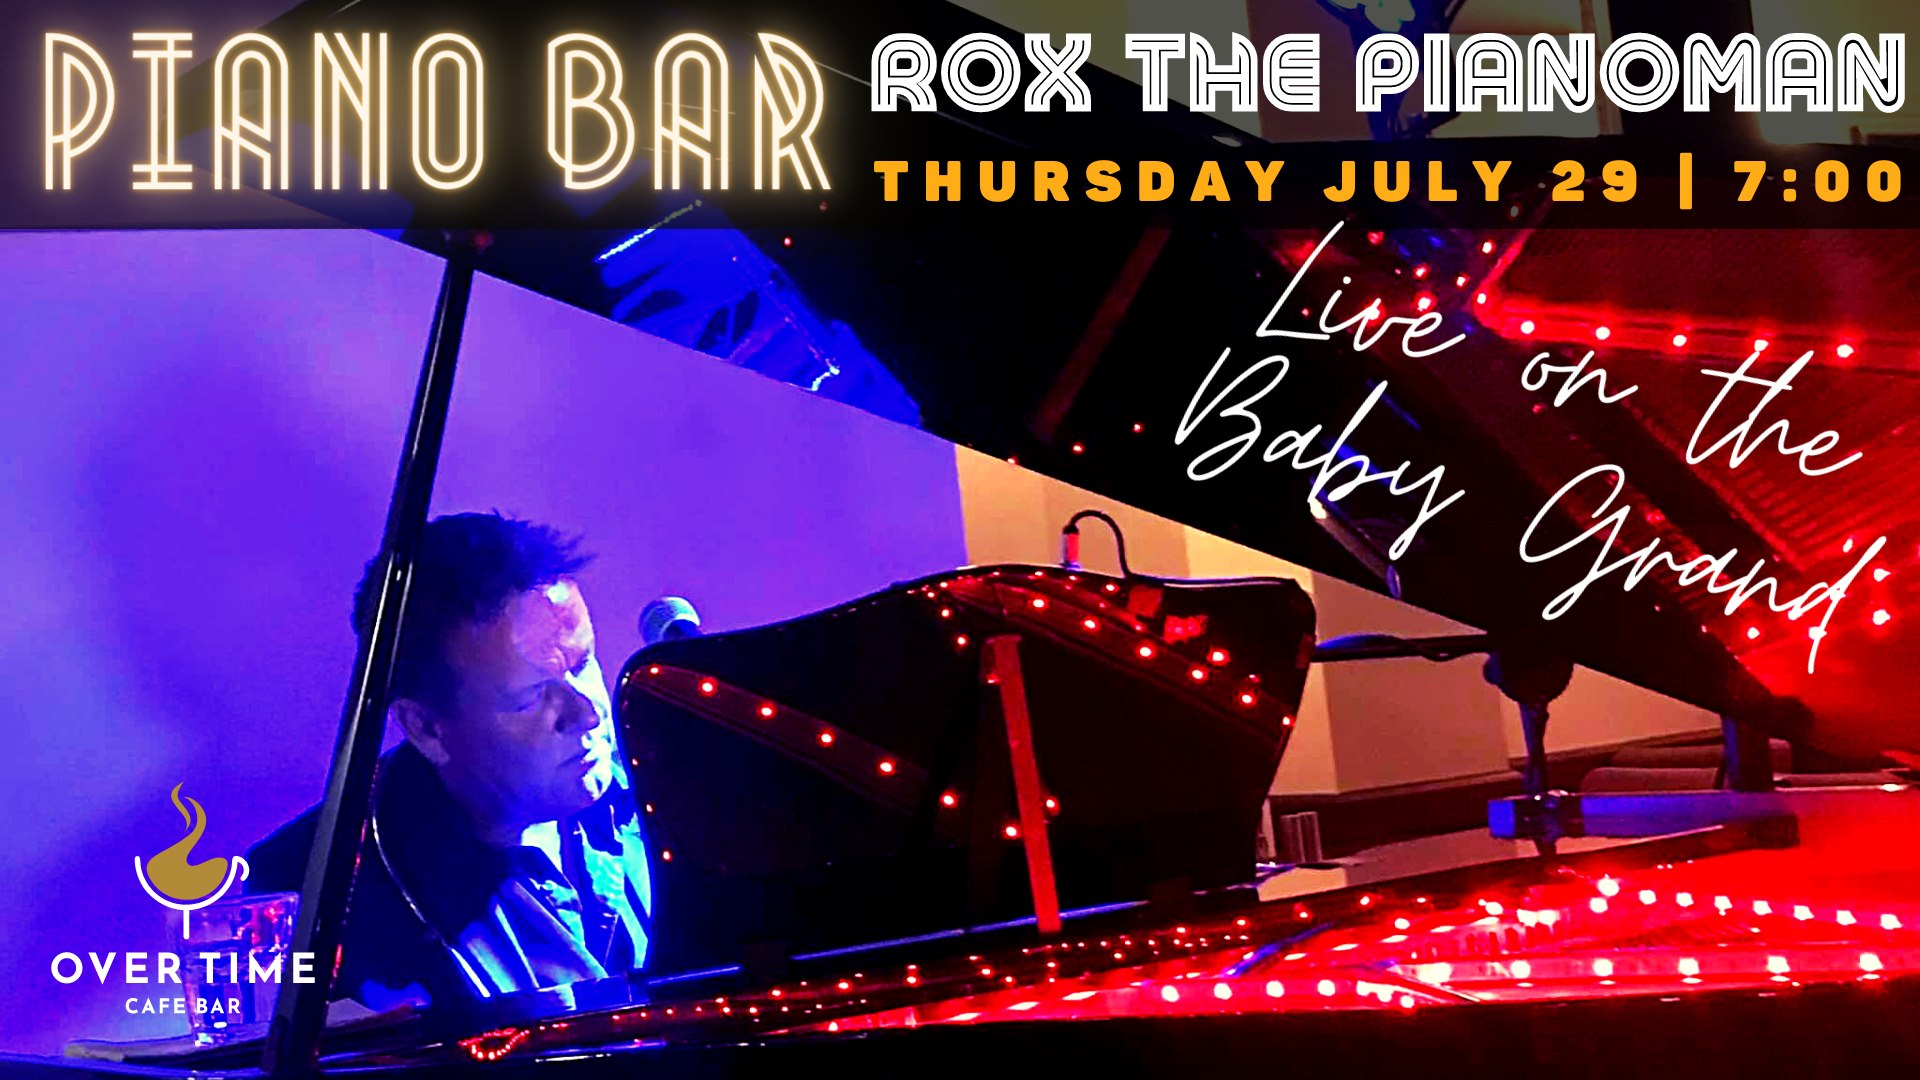 ROX The Pianoman LIVE on the Baby Grand @ Newcastle's Piano Bar – Overtime Cafe Bar  Thurs 29th July